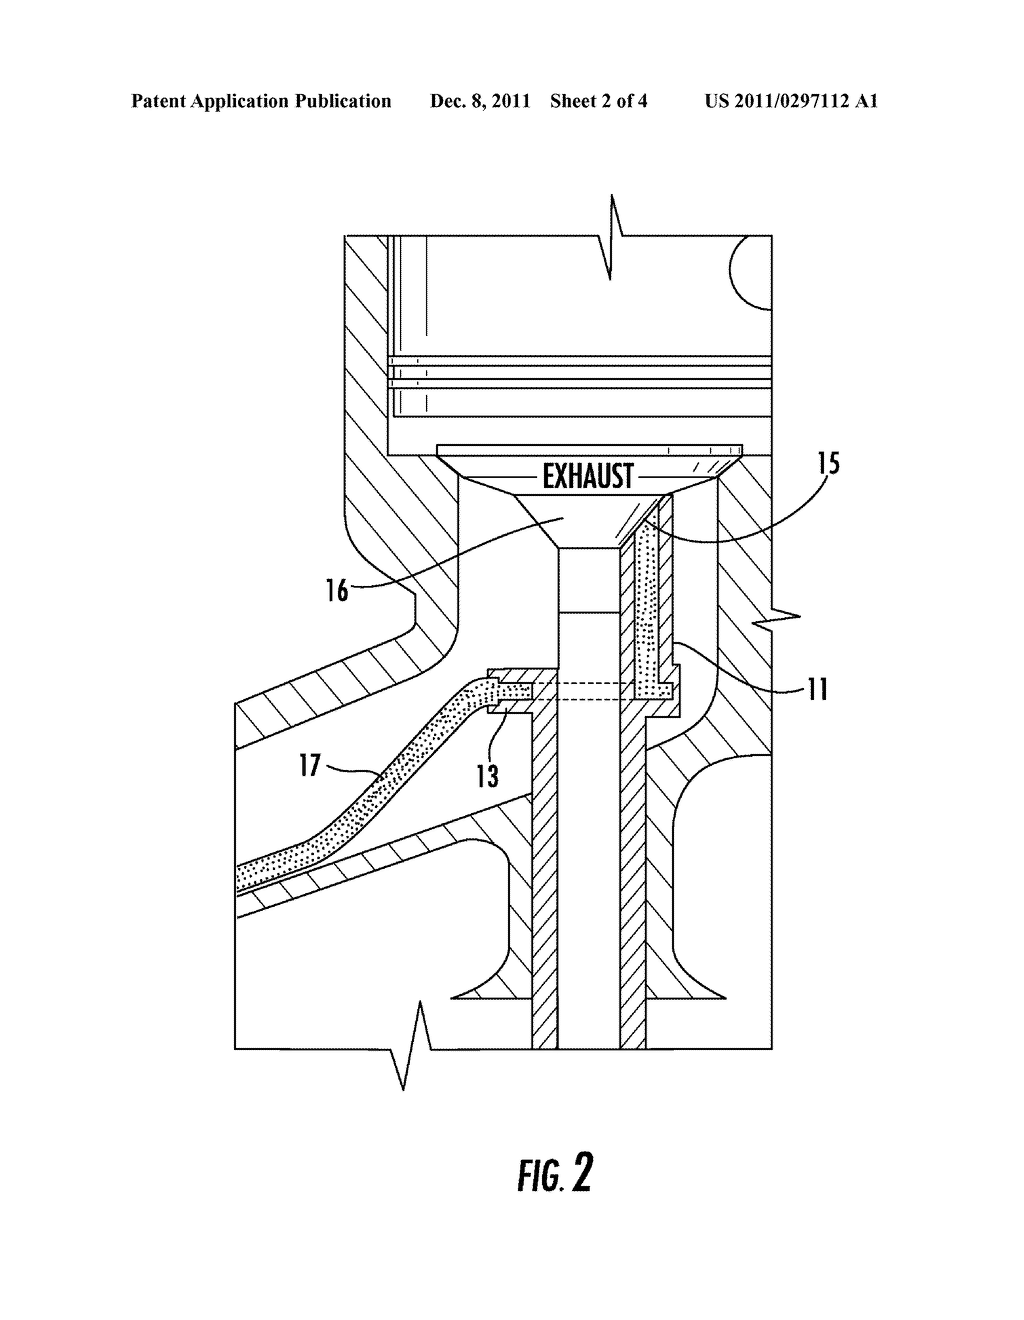 Forced Air Valve Guide For An Internal Combustion Engine Diagram Schematic And Image 03